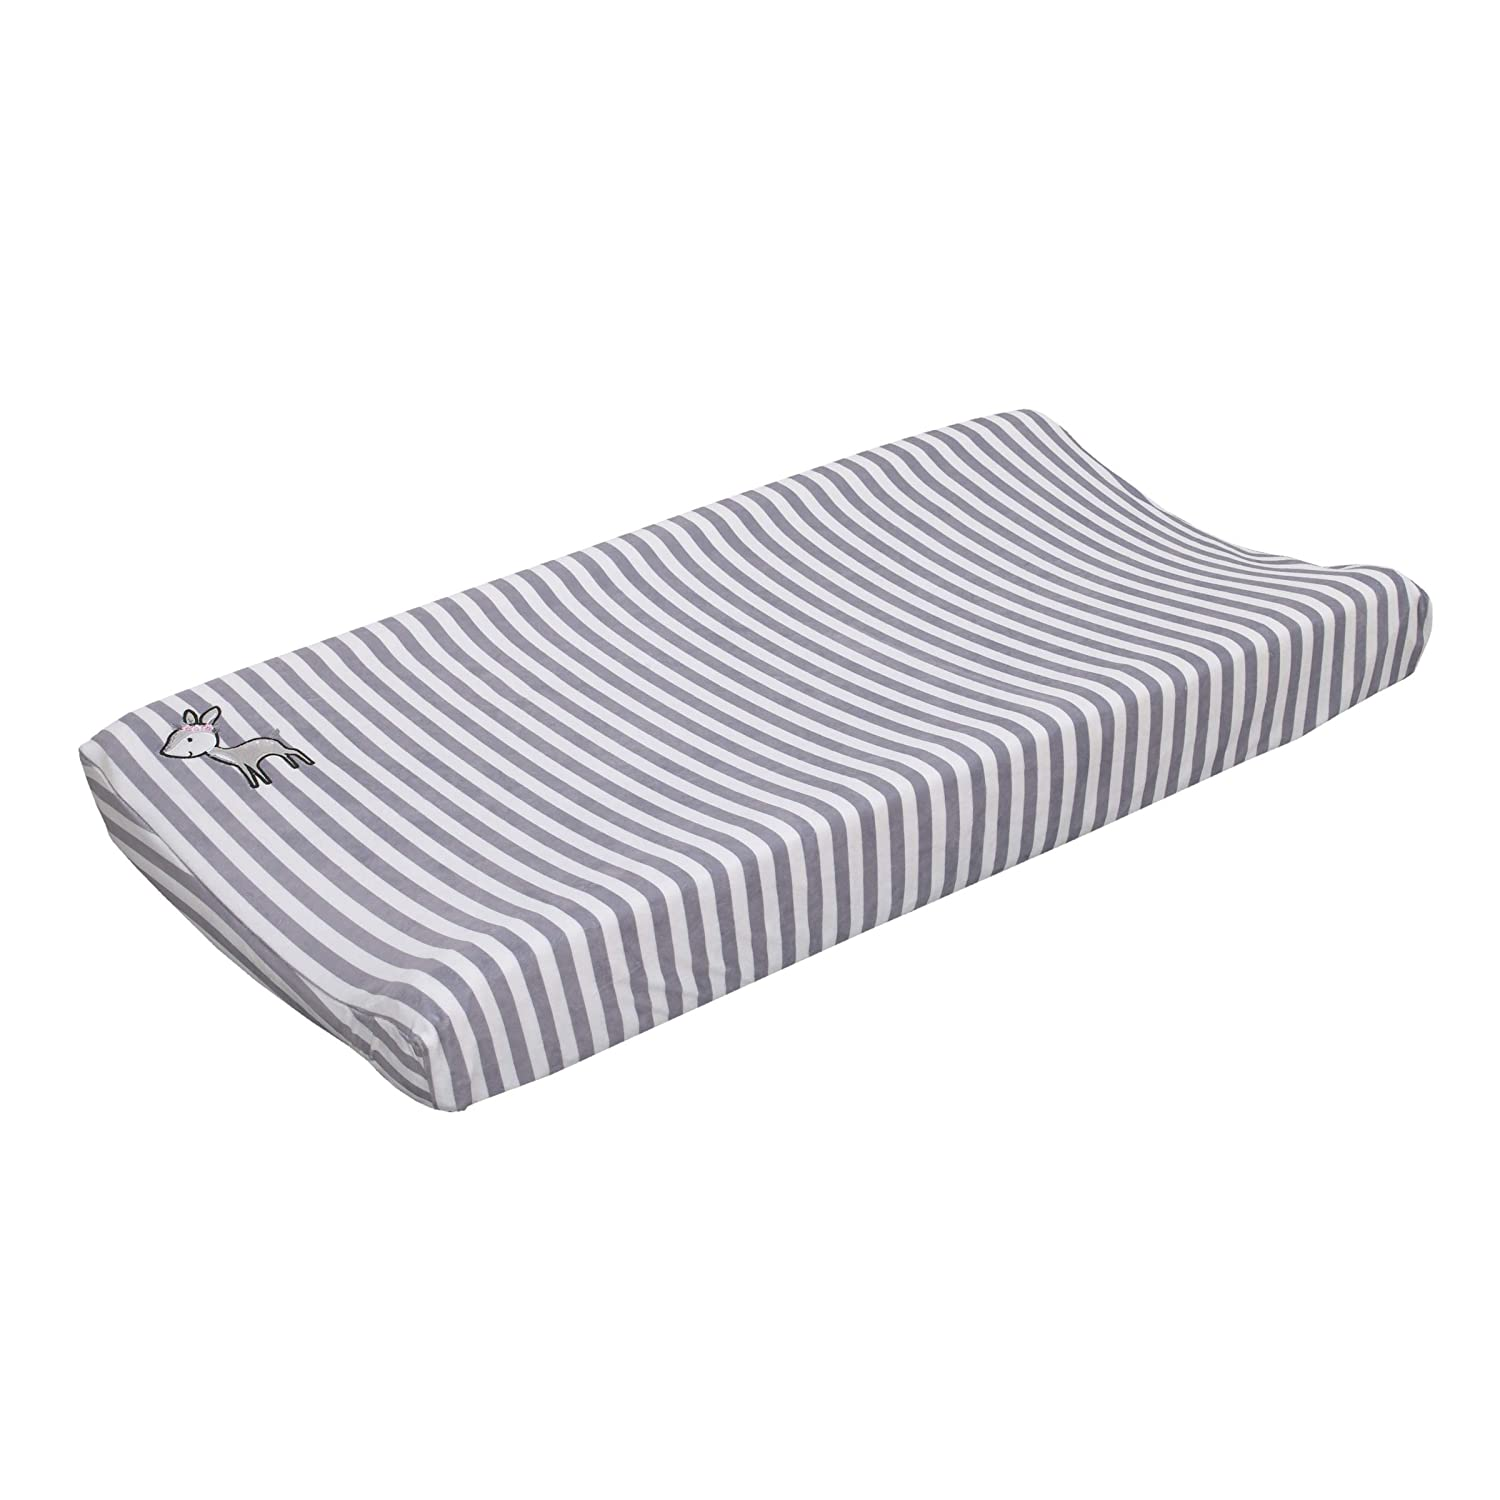 Little Love By Nojo Sweet Deer, Grey, White Stripe Plush Changing Pad Cover With Pink Deer Applique, Grey, White, Pink